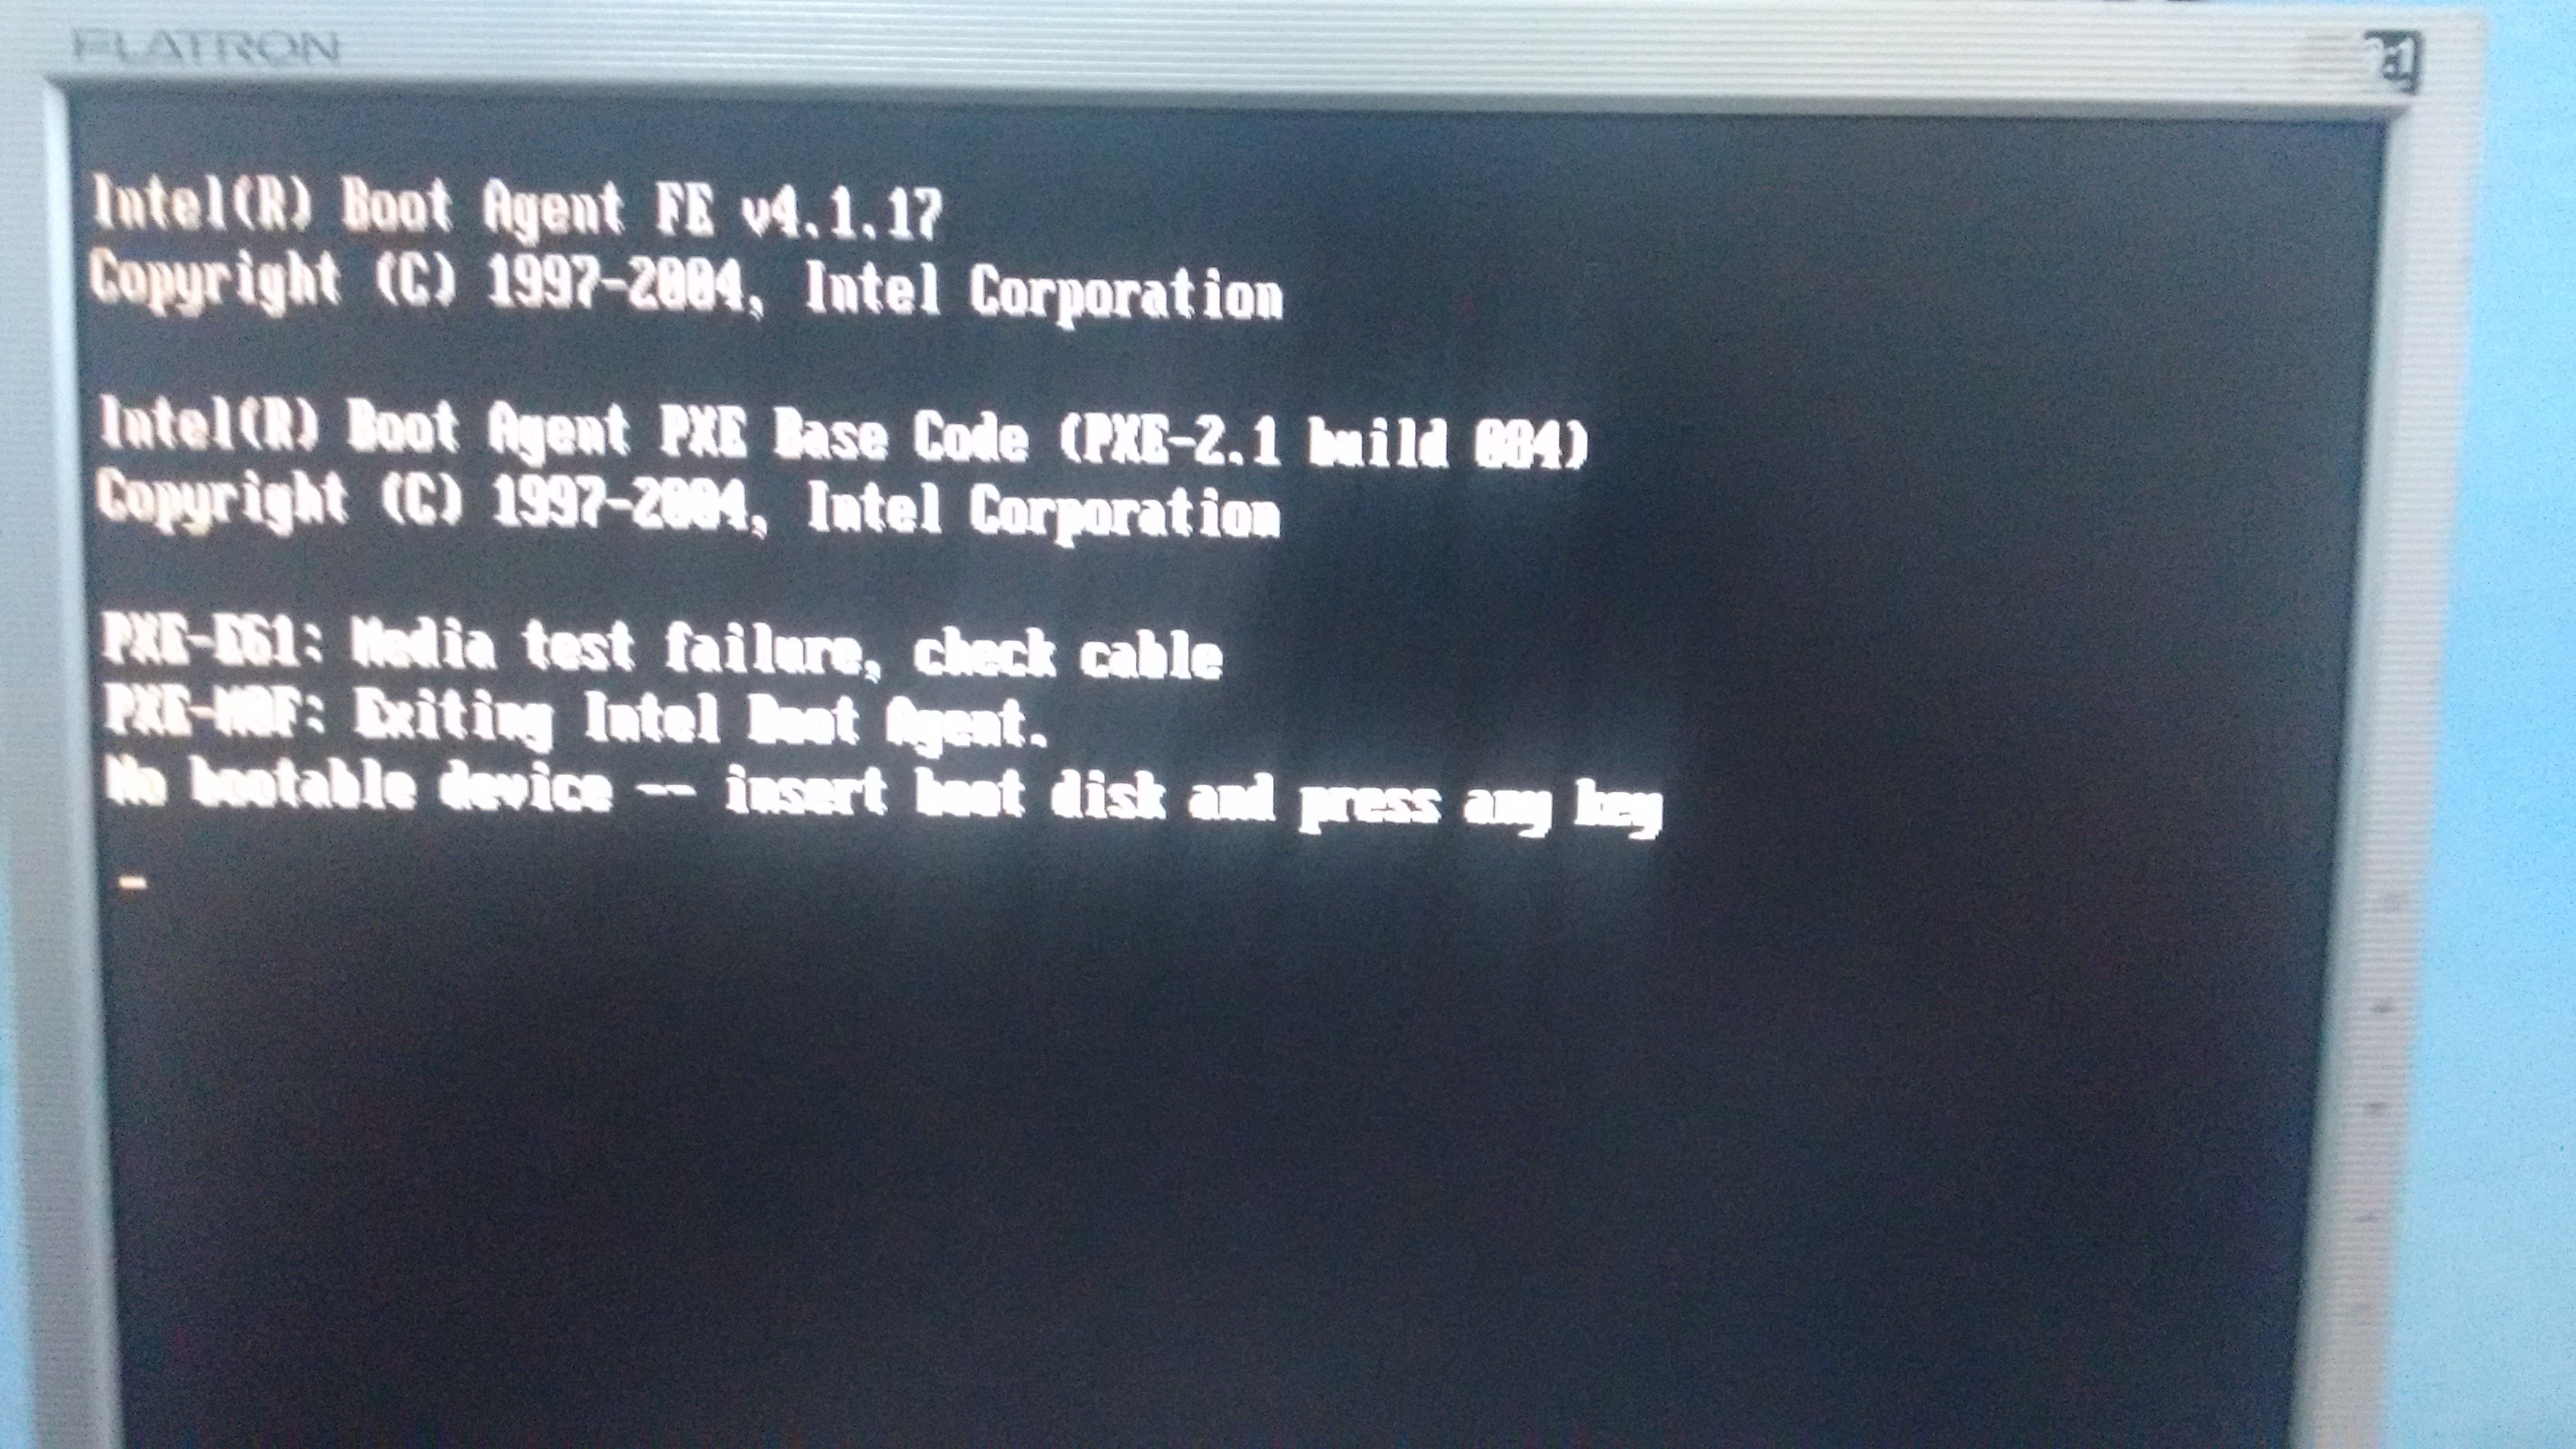 pxe-mof : exiting intel boot agent no bootable device